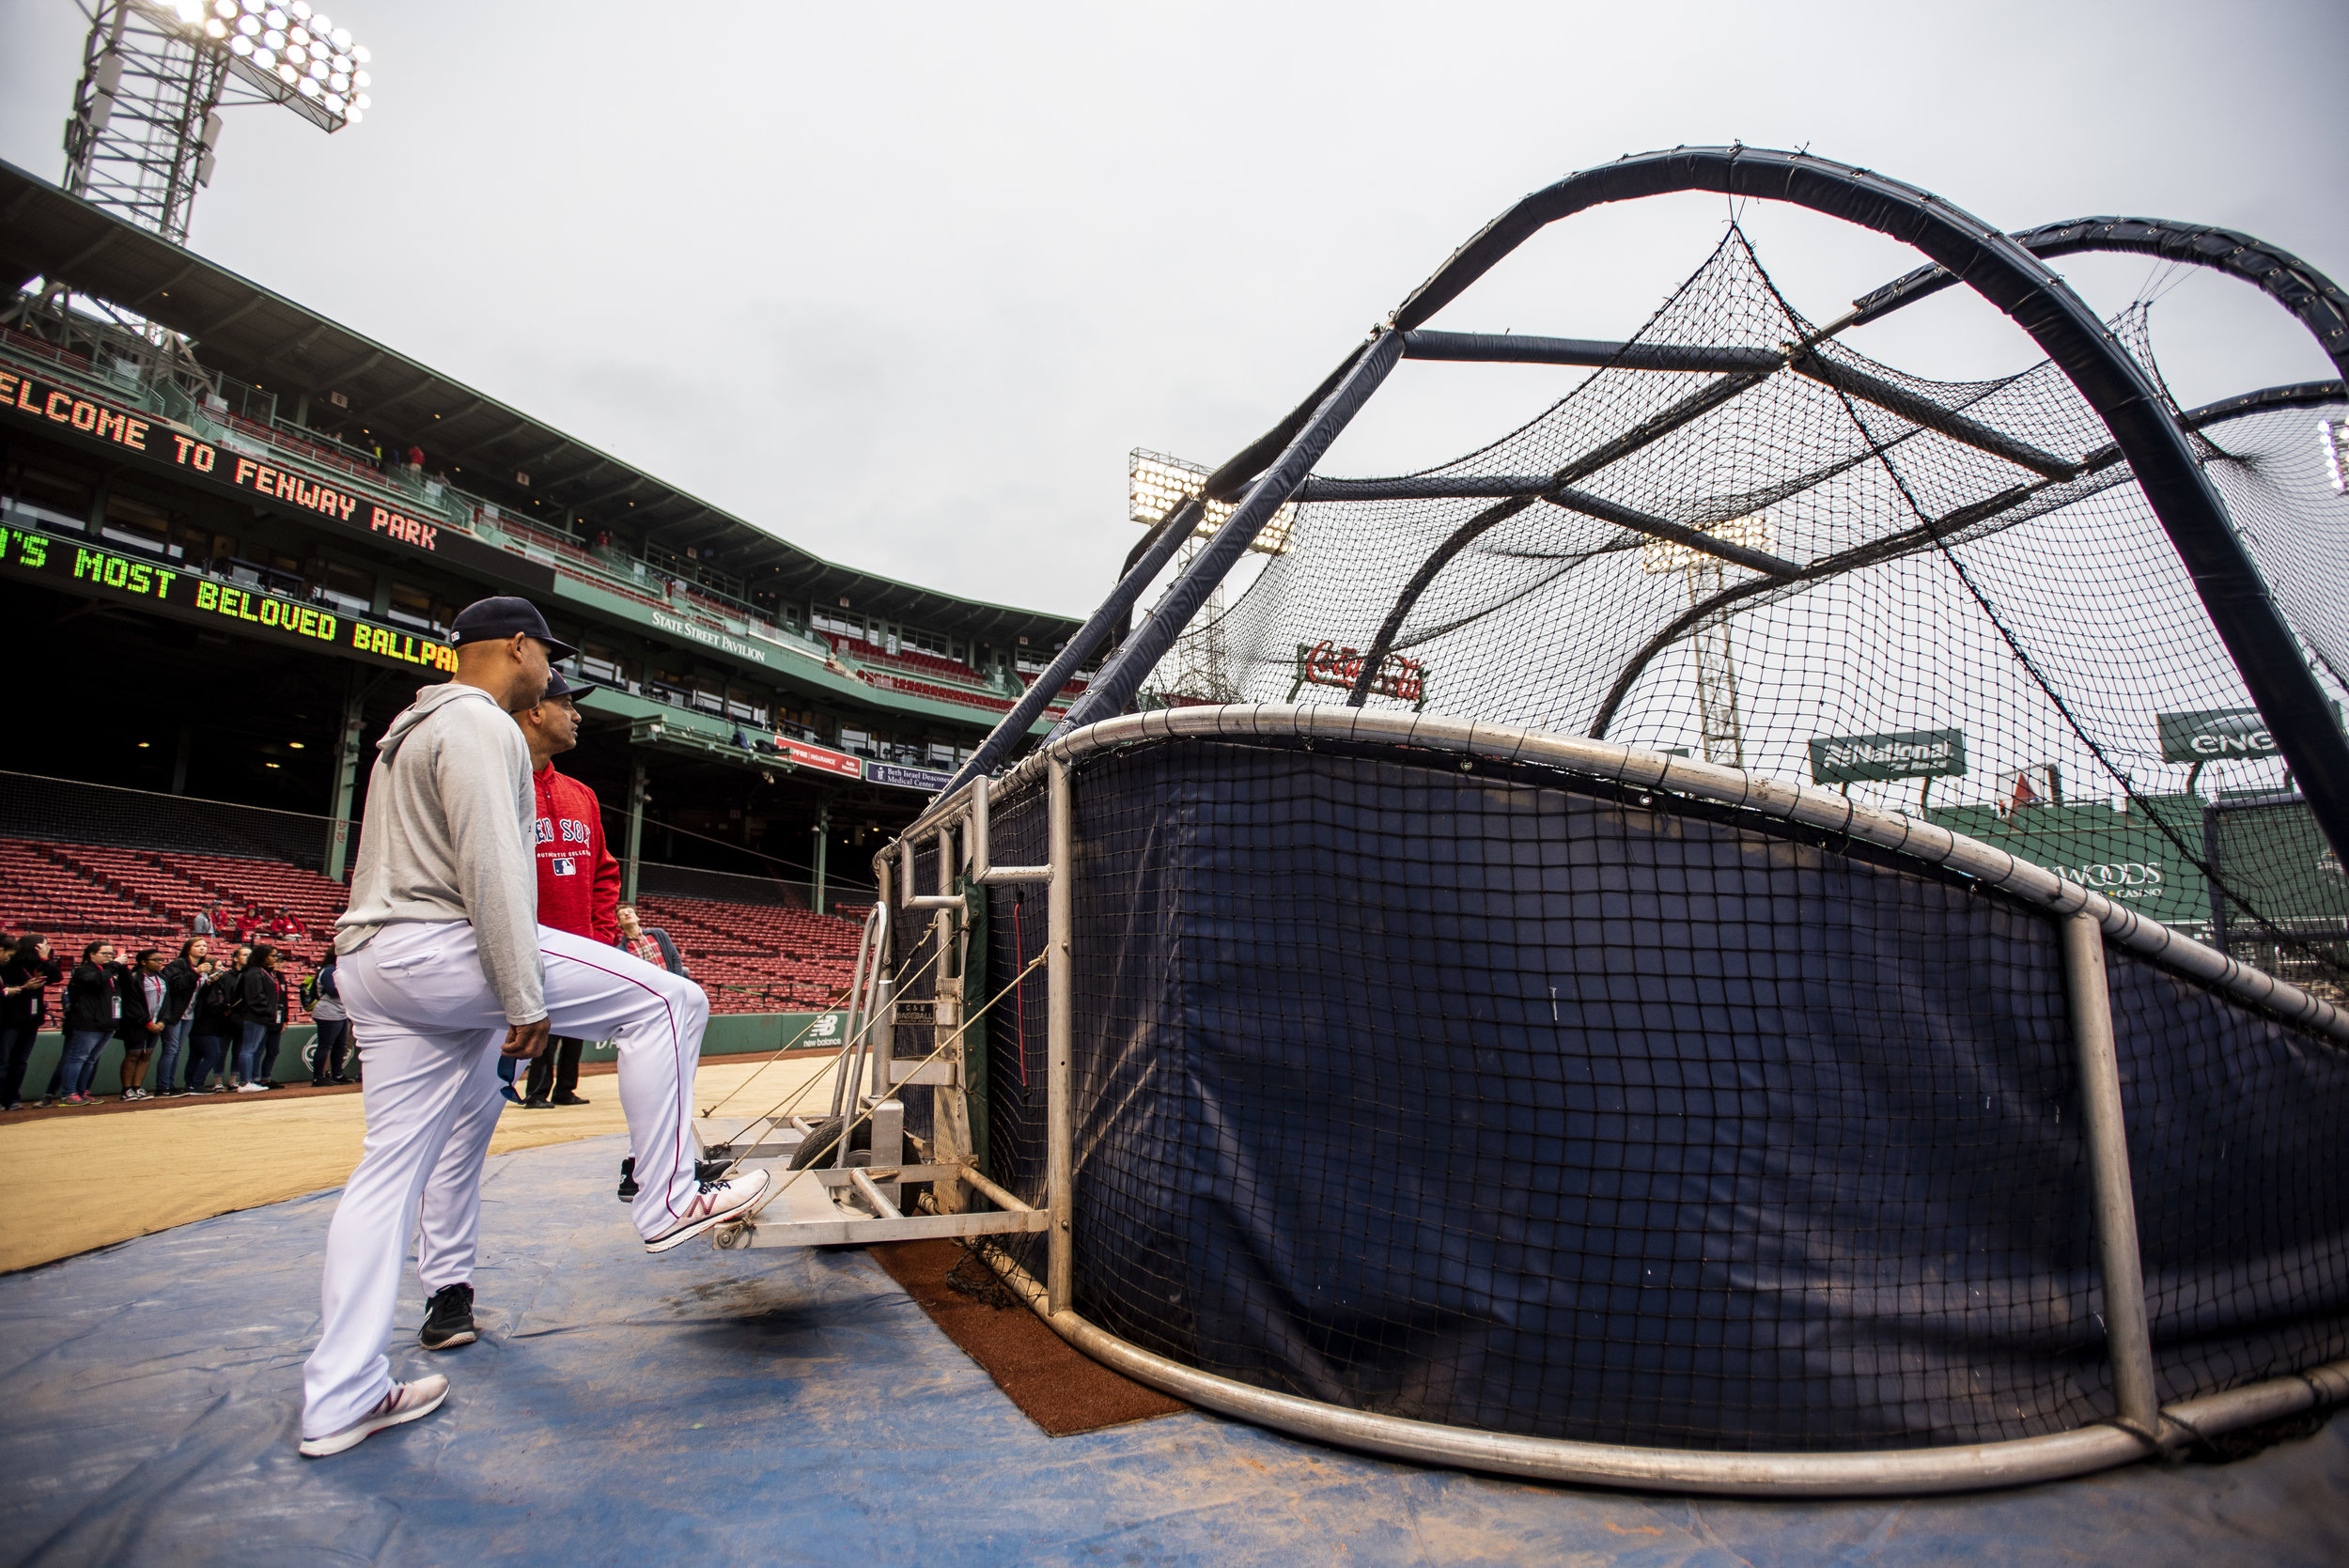 May 27, 2018, Boston, MA: Red Sox Manager Alex Cora chats with Julio Lugo during batting practice before the Red Sox Alumni Game at Fenway Park in Boston, Massachusetts on Sunday, May 27, 2018. (Photo by Matthew Thomas/Boston Red Sox)